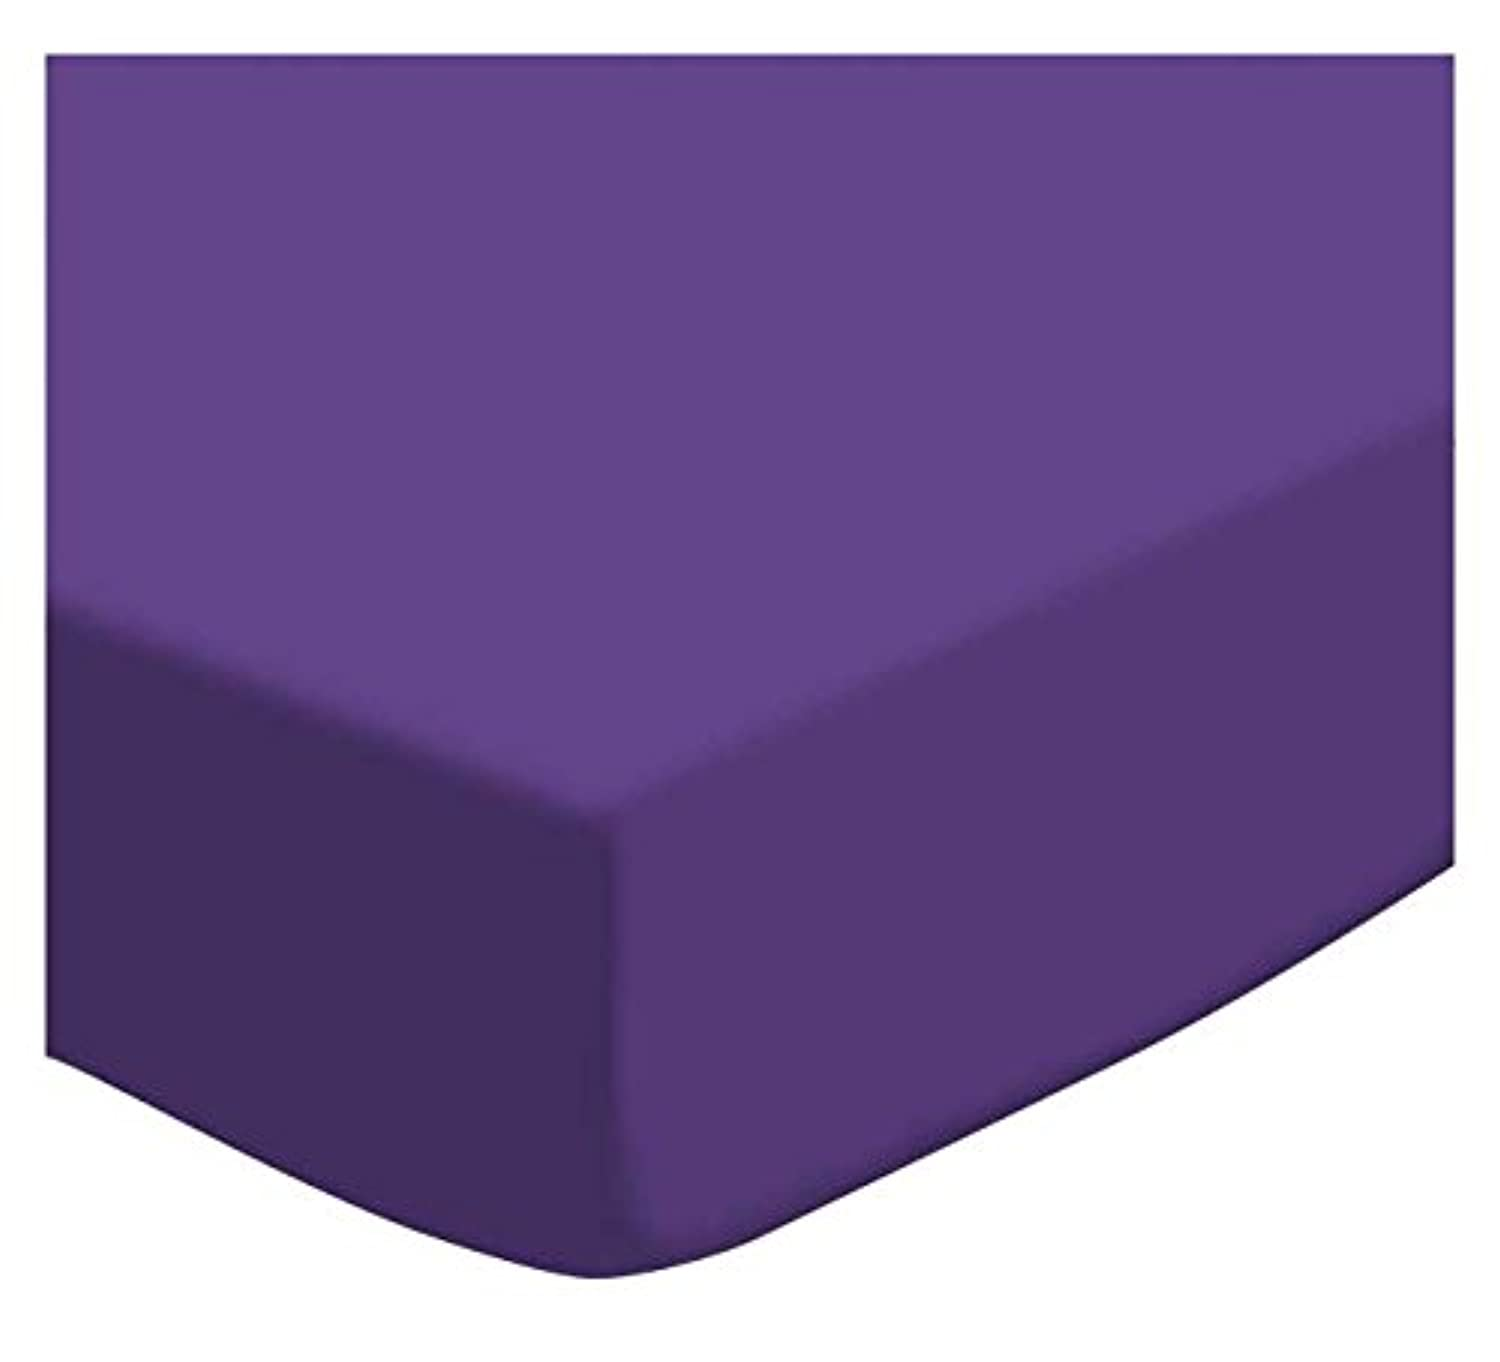 SheetWorld PC-WS12 PC-WS12 Fitted Portable / Mini Crib Sheet - Solid Purple Woven - Made In USA by sheetworld